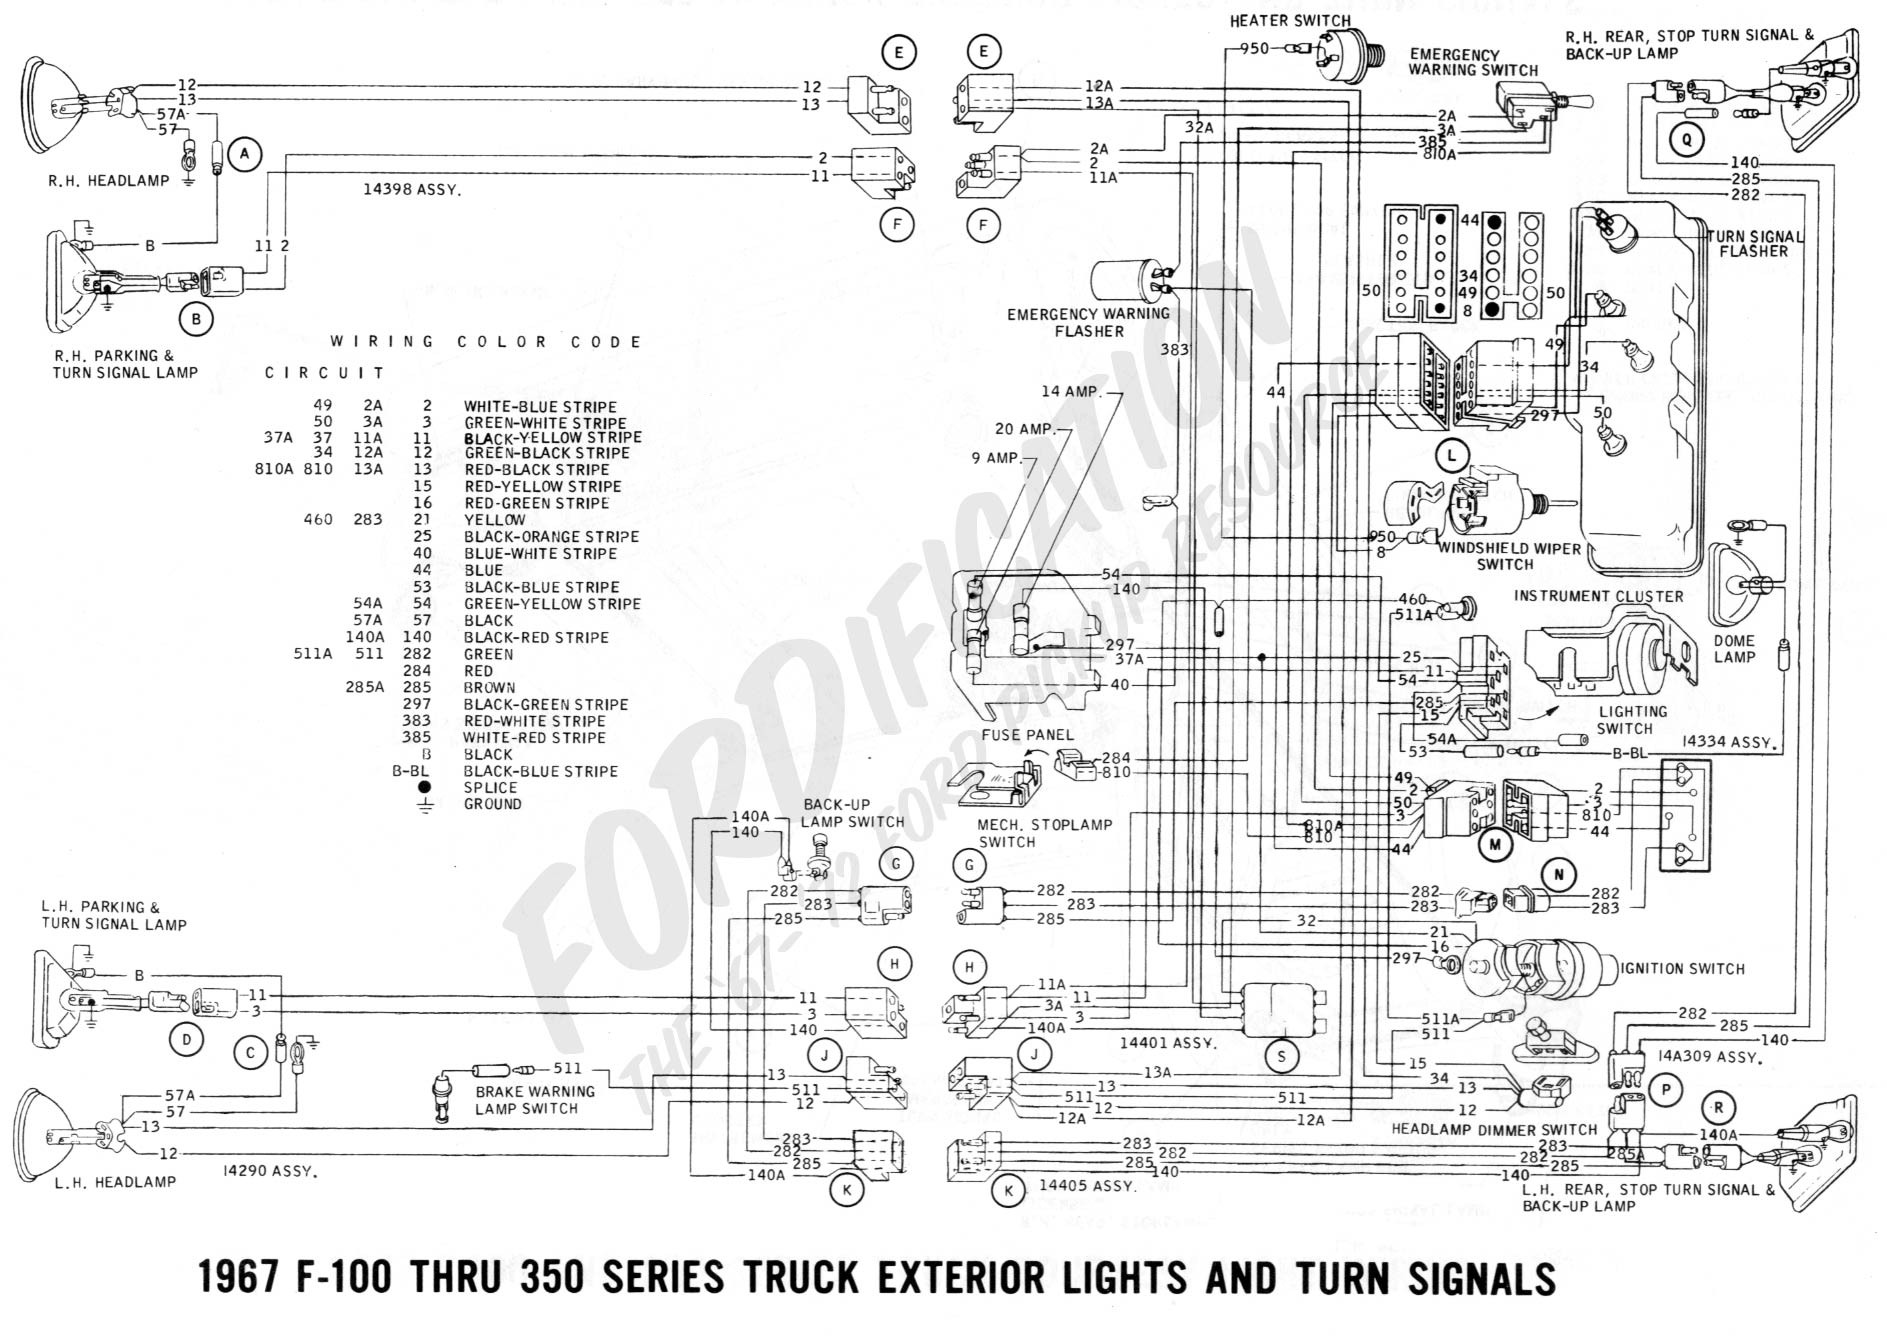 1977 Ford Truck Wiring Diagram - Wiring Liry Diagram A2  Ford L Wiring Schematic on